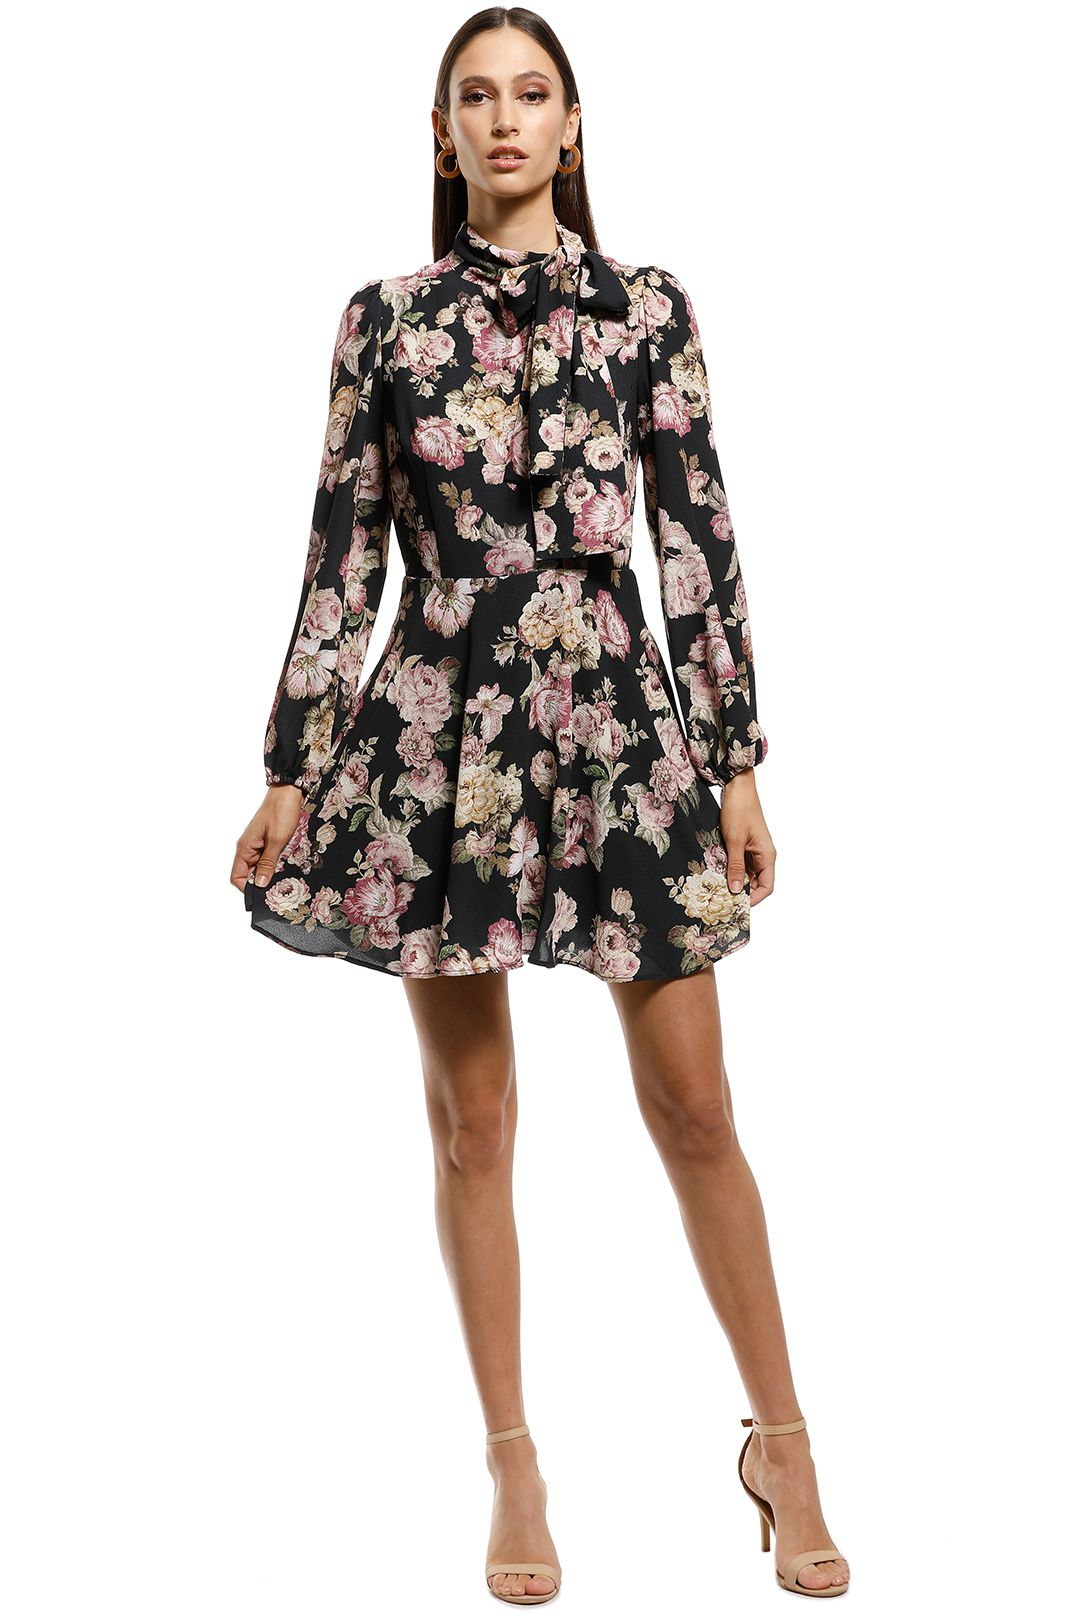 Pasduchas - Sundancer Dress - Black Floral - Front